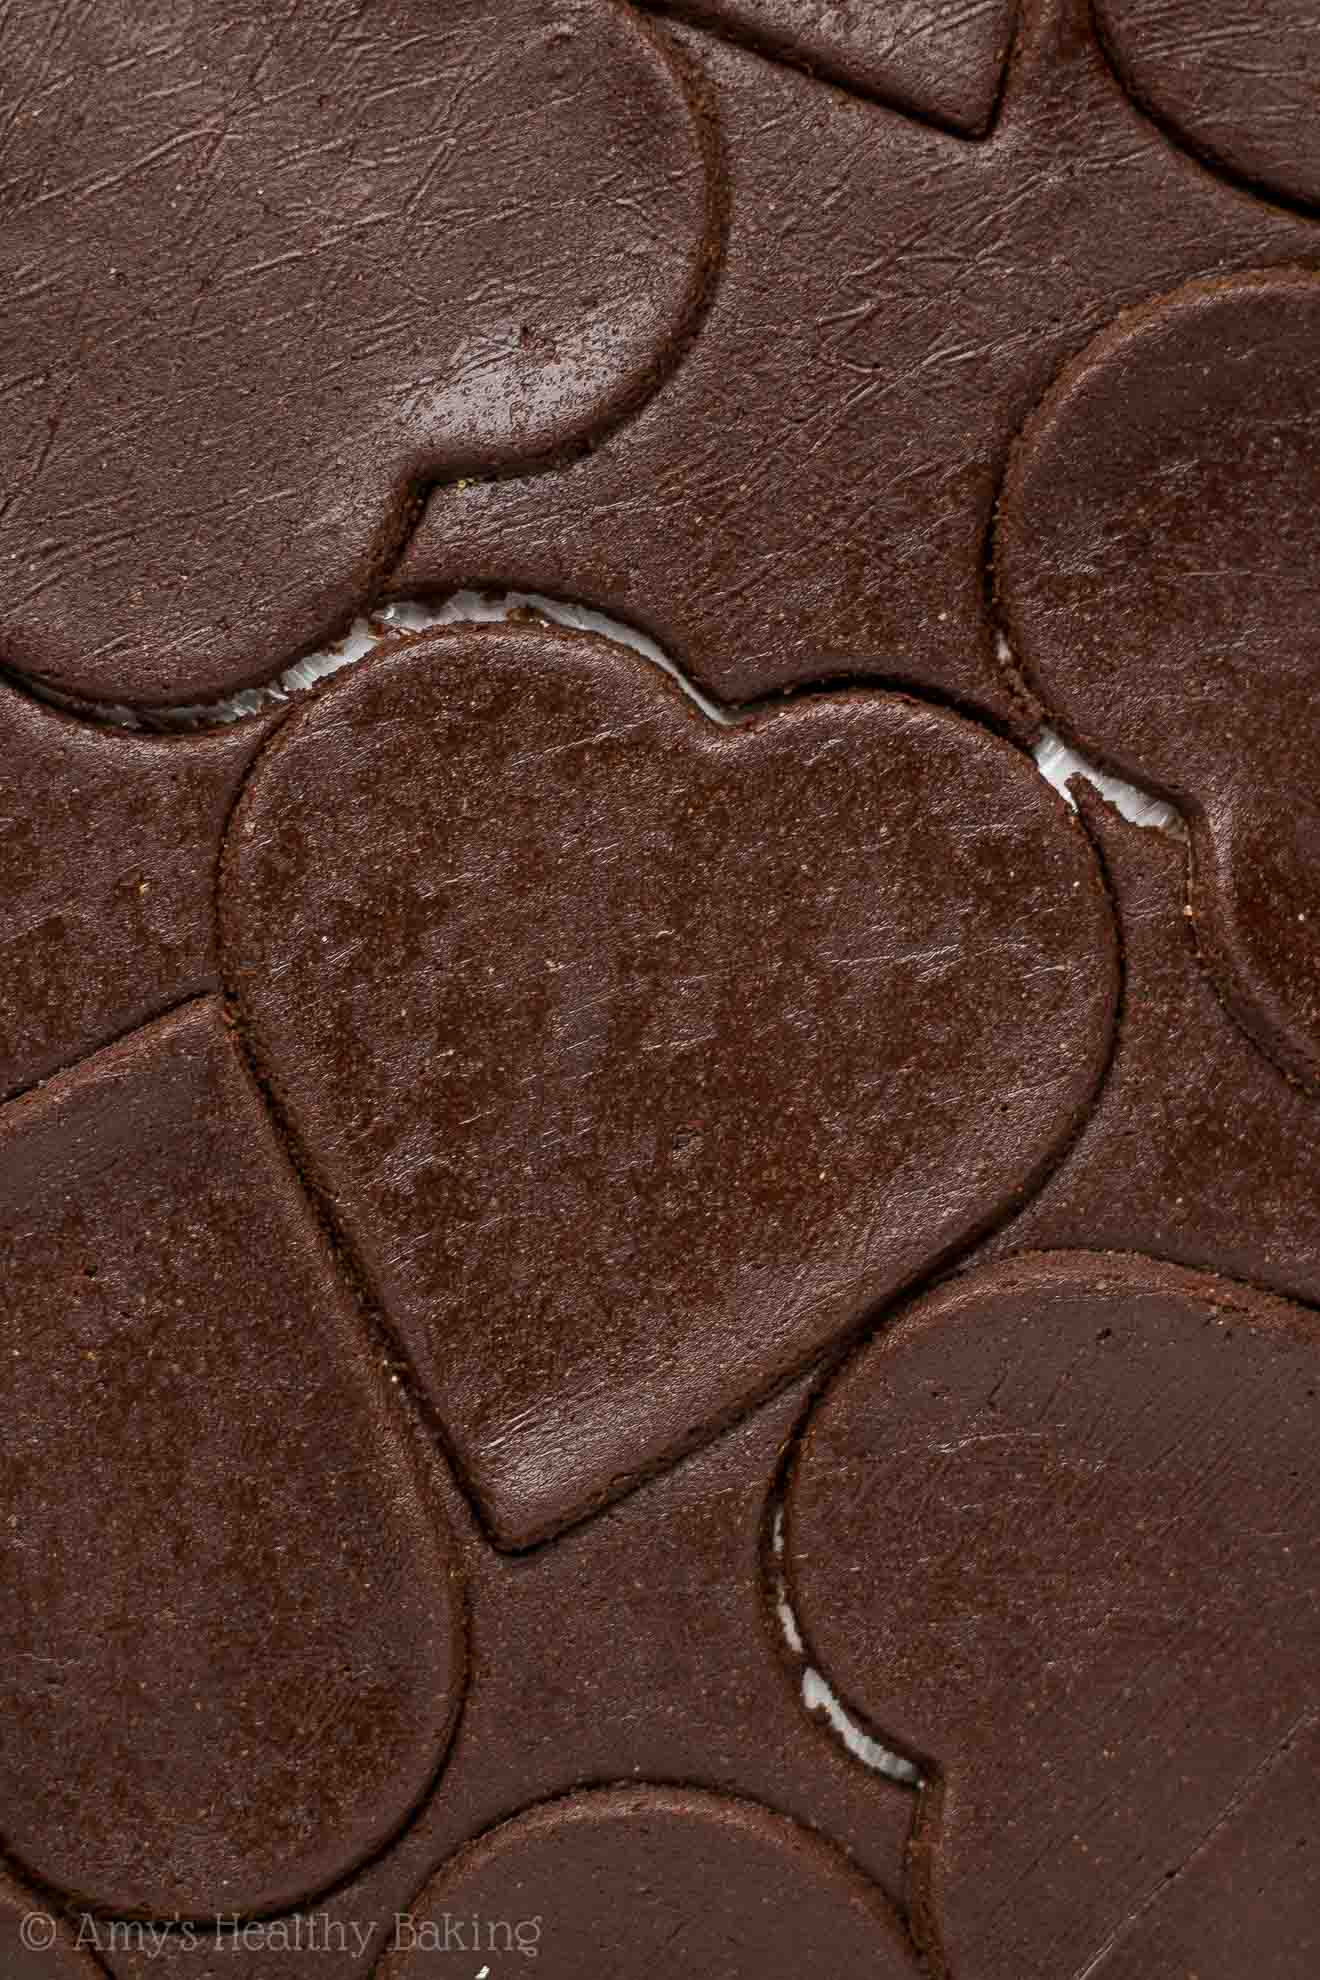 Dark chocolate sugar cookie dough that's been rolled out and cut into heart shapes